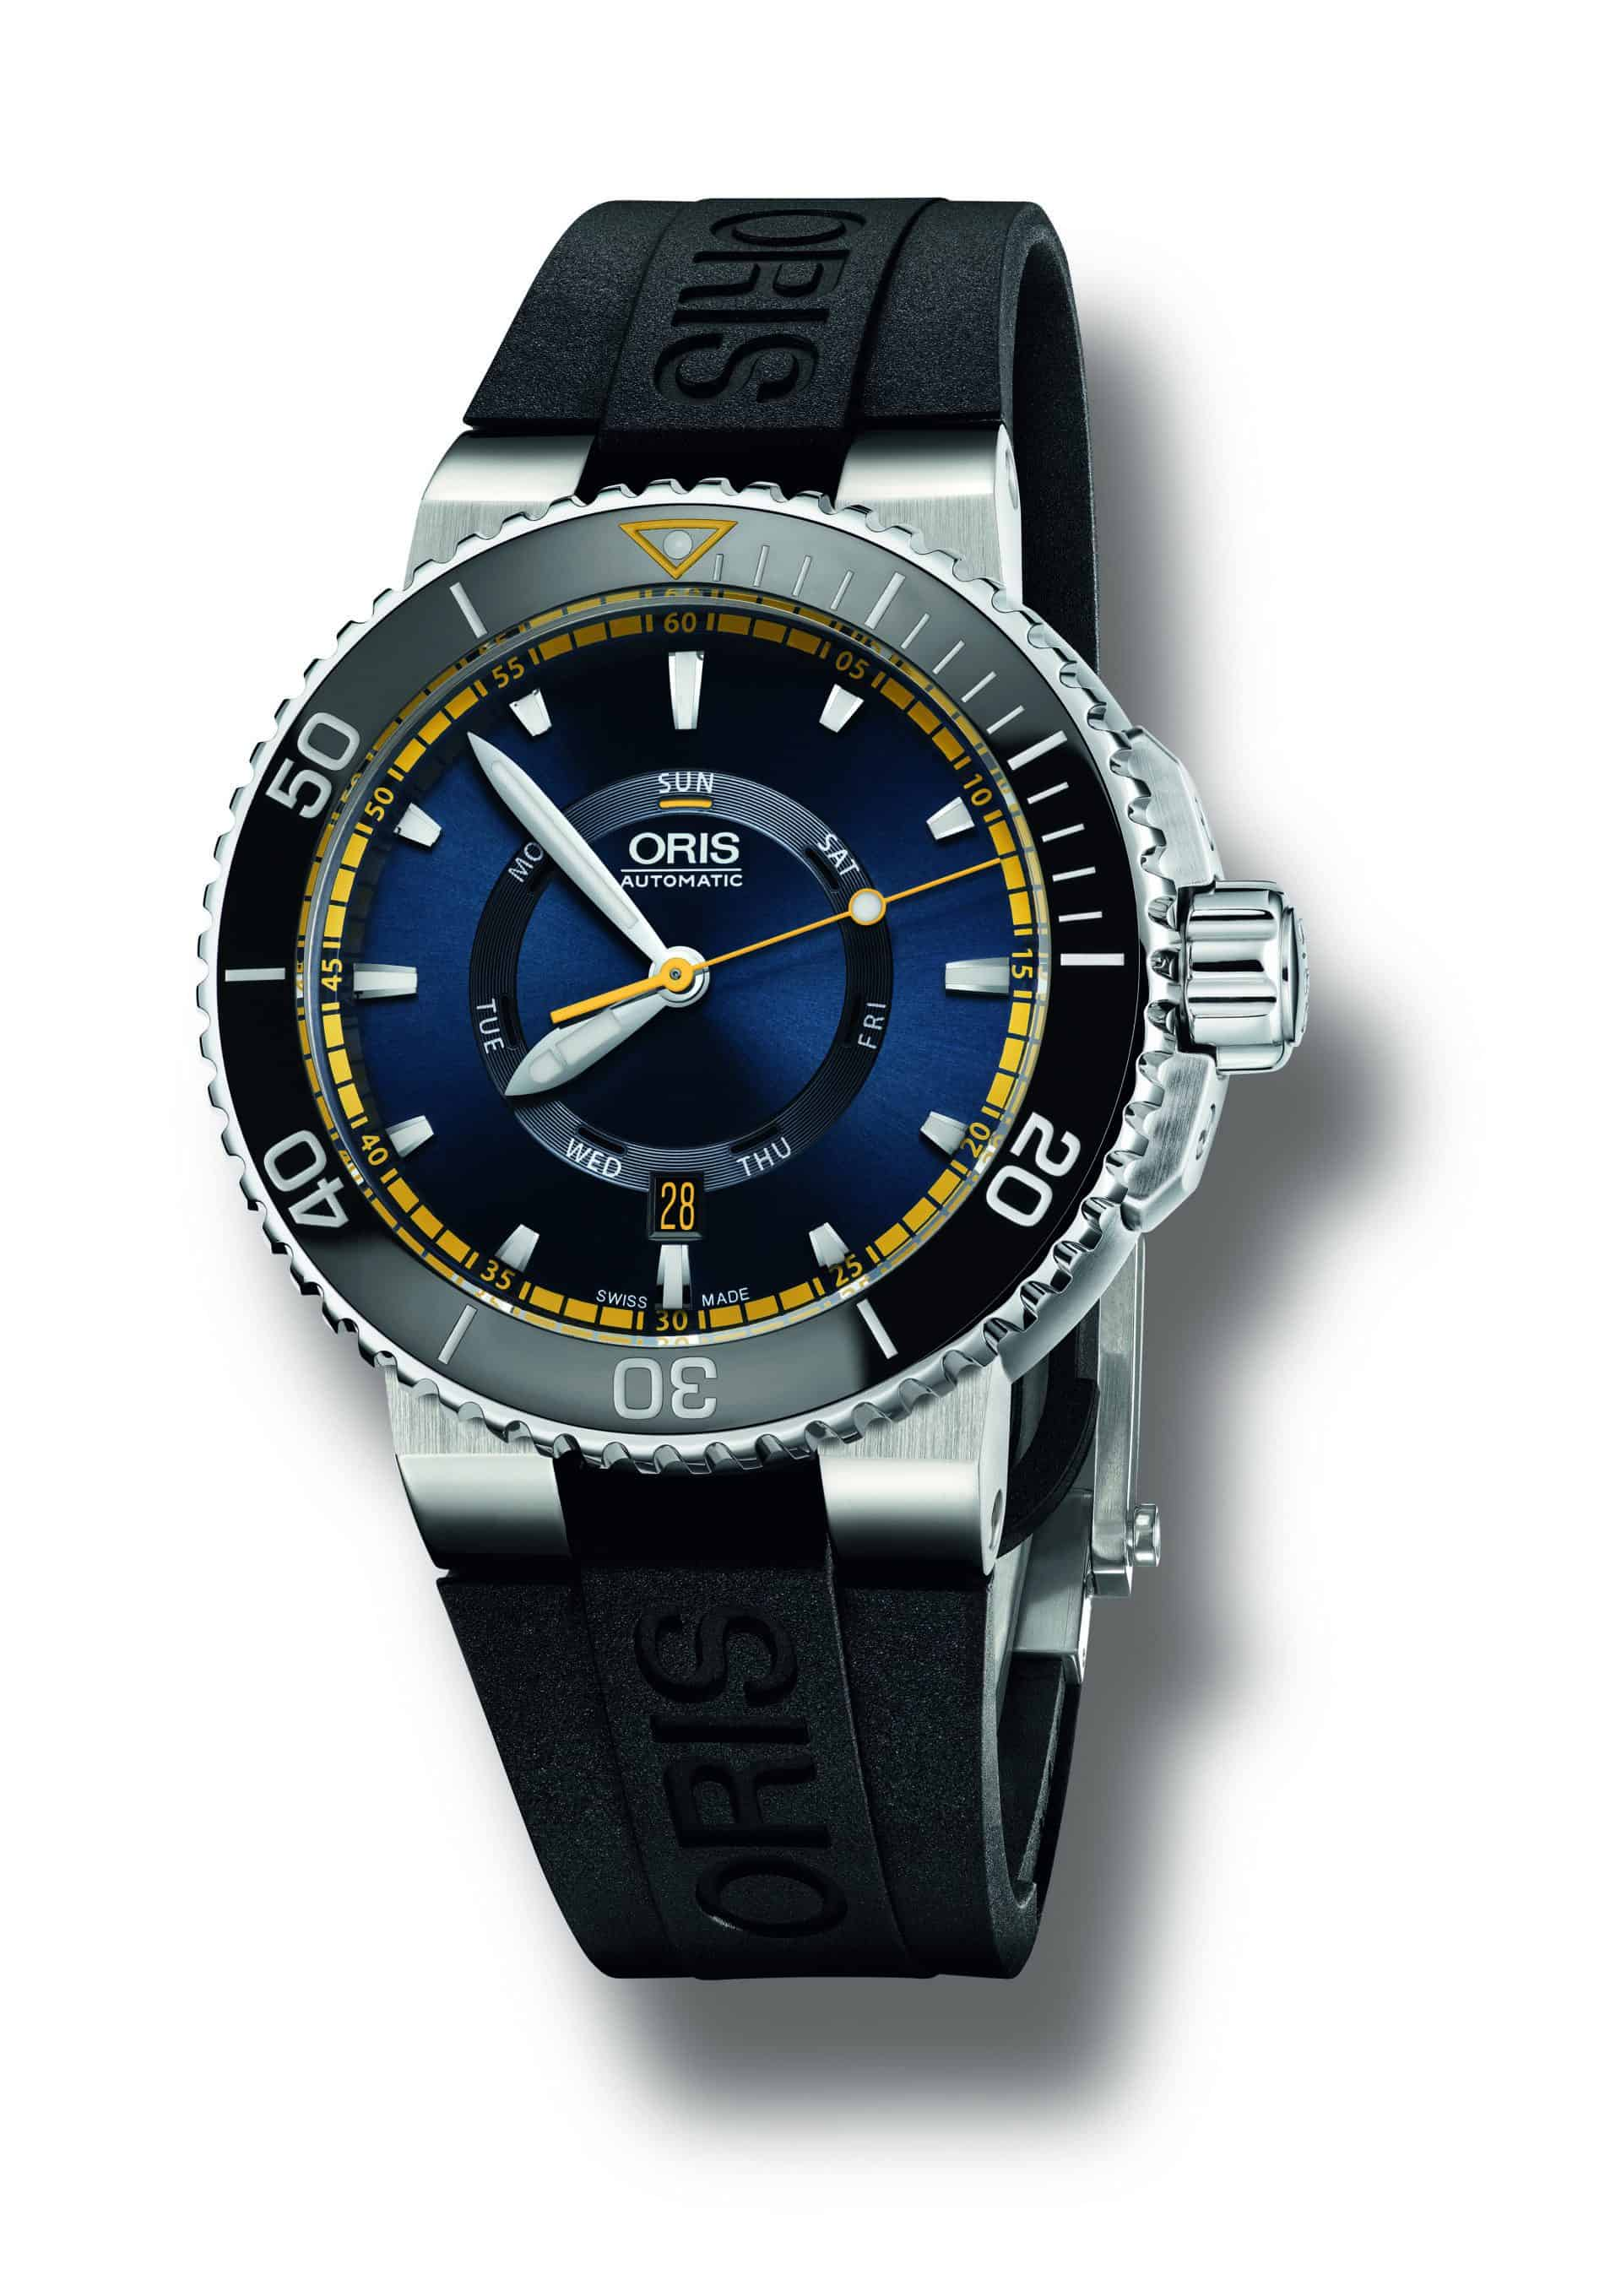 08 Oris Great Barrier Reef Limited Edition II Images 01 735 7673 4185 RS